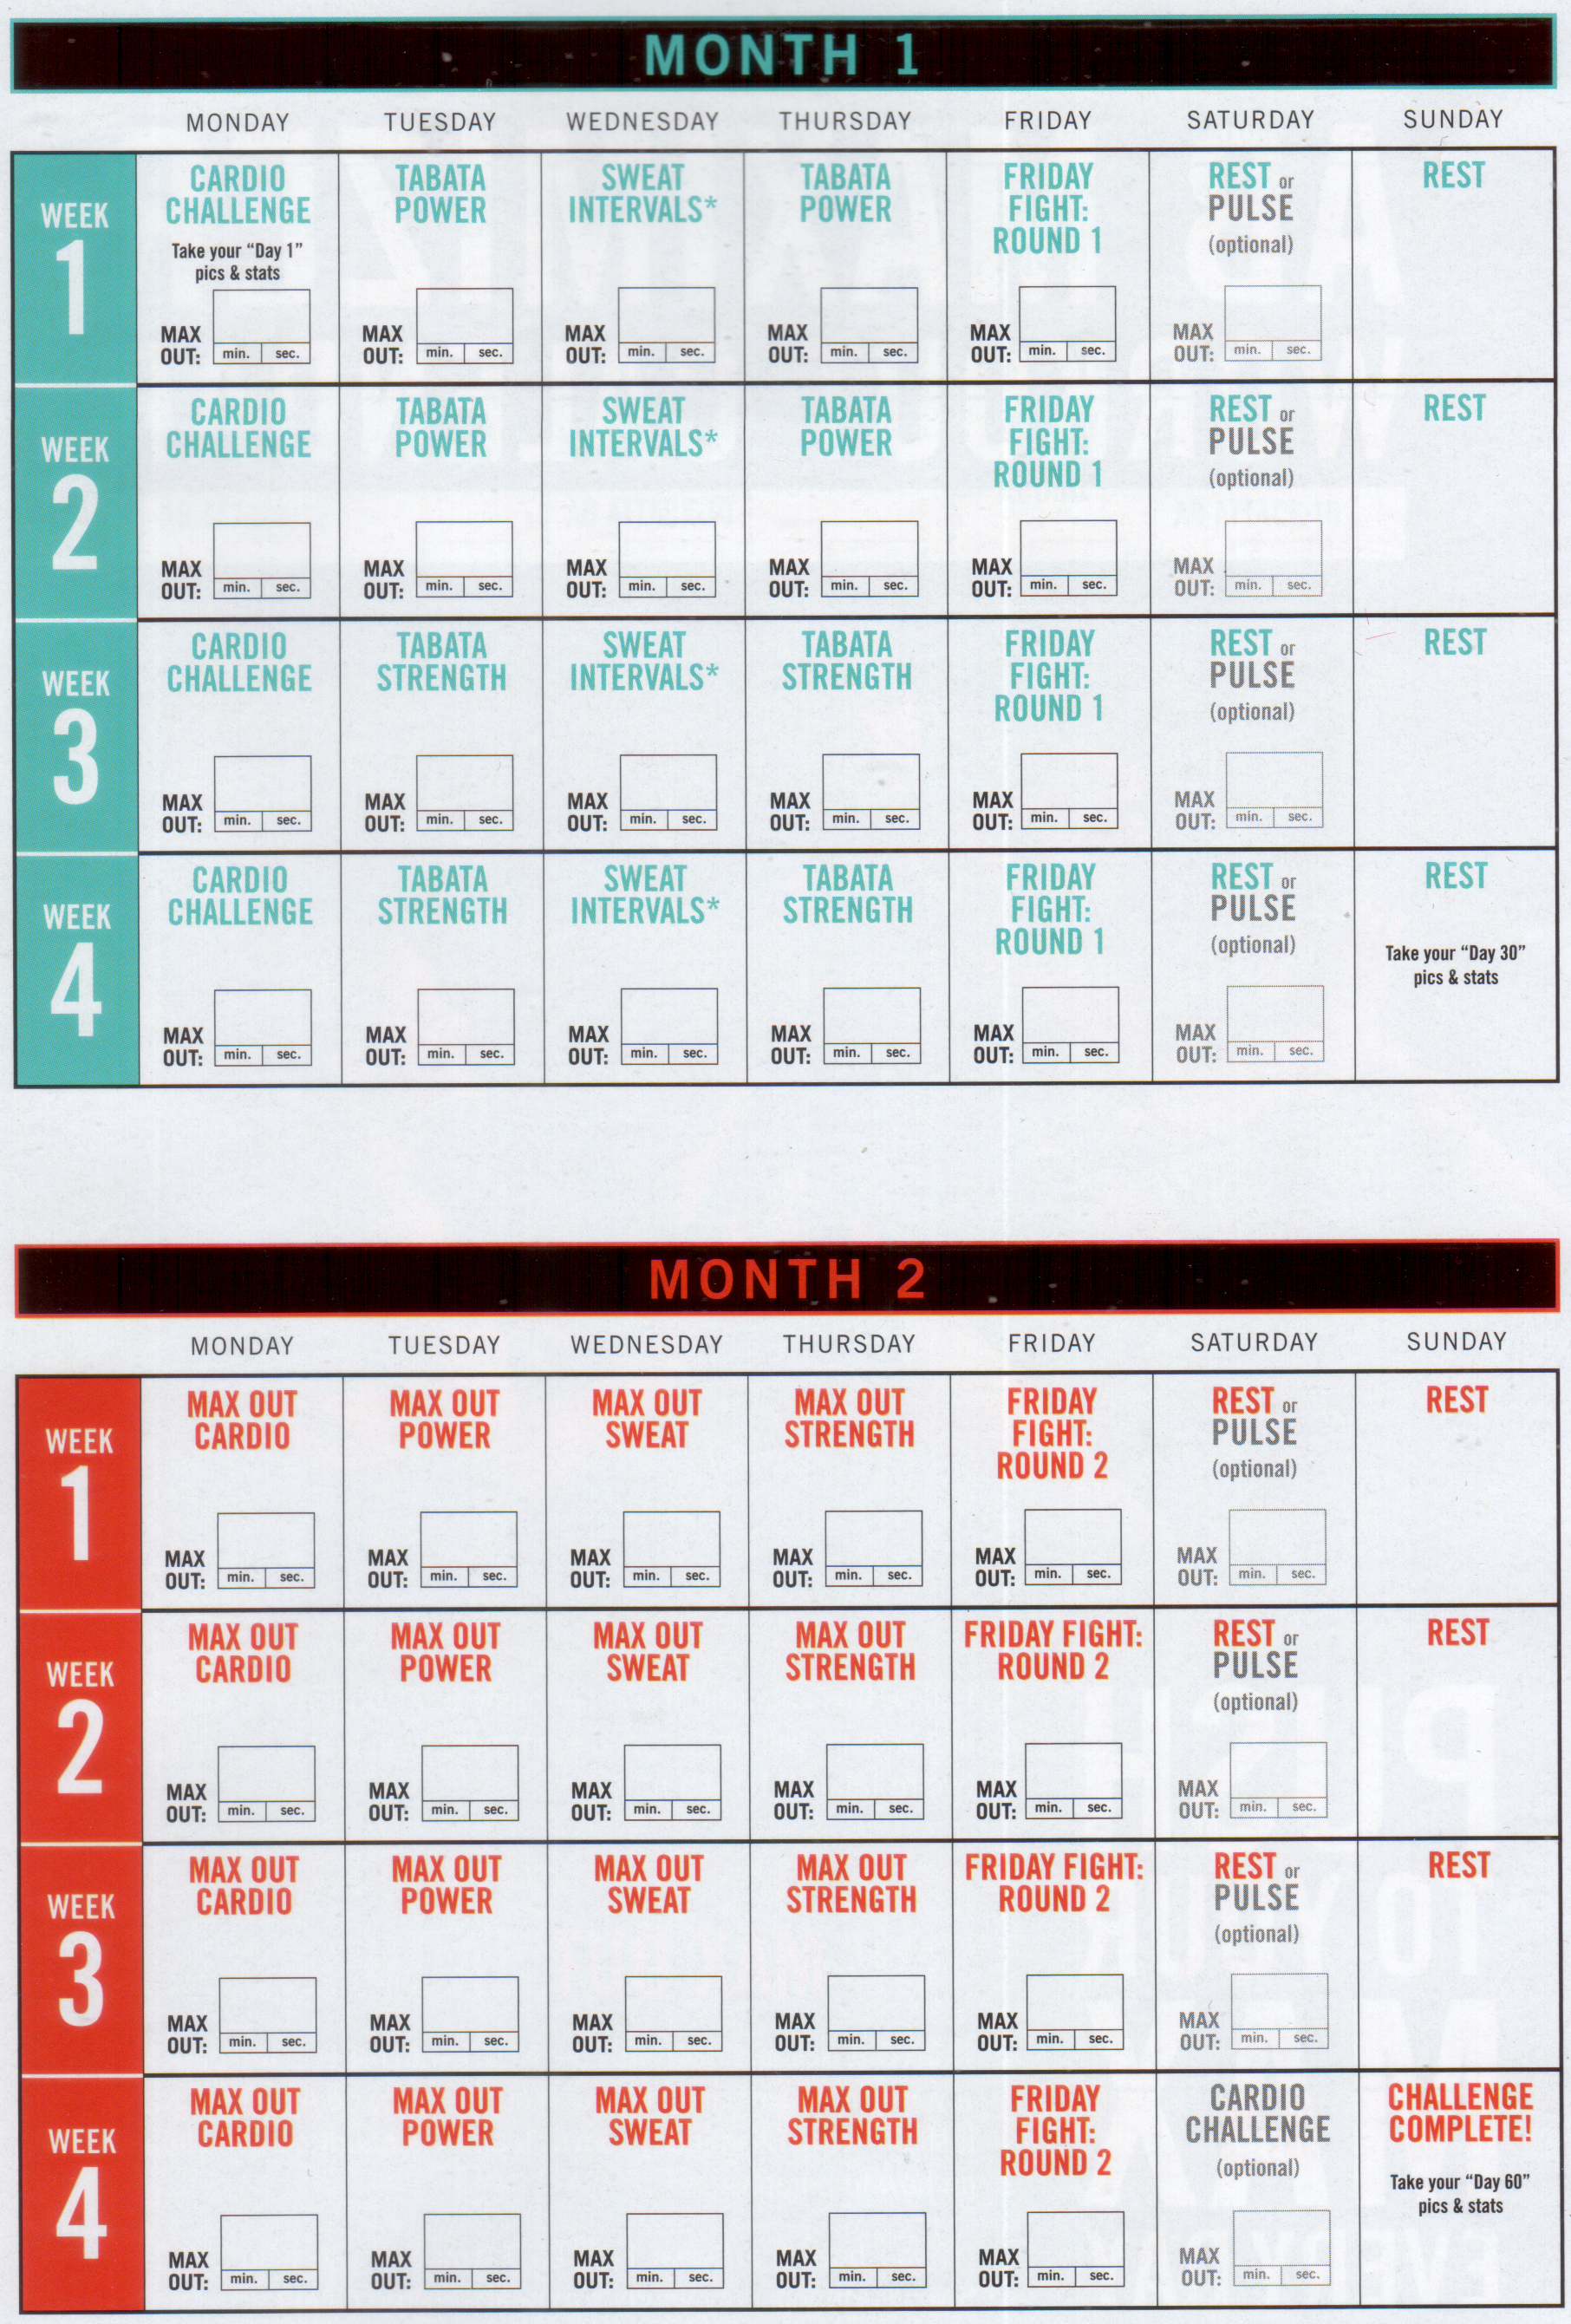 Schedule | Insanity Max 30, Insanity Max 30 Schedule throughout Insanity Max 30 Calendar